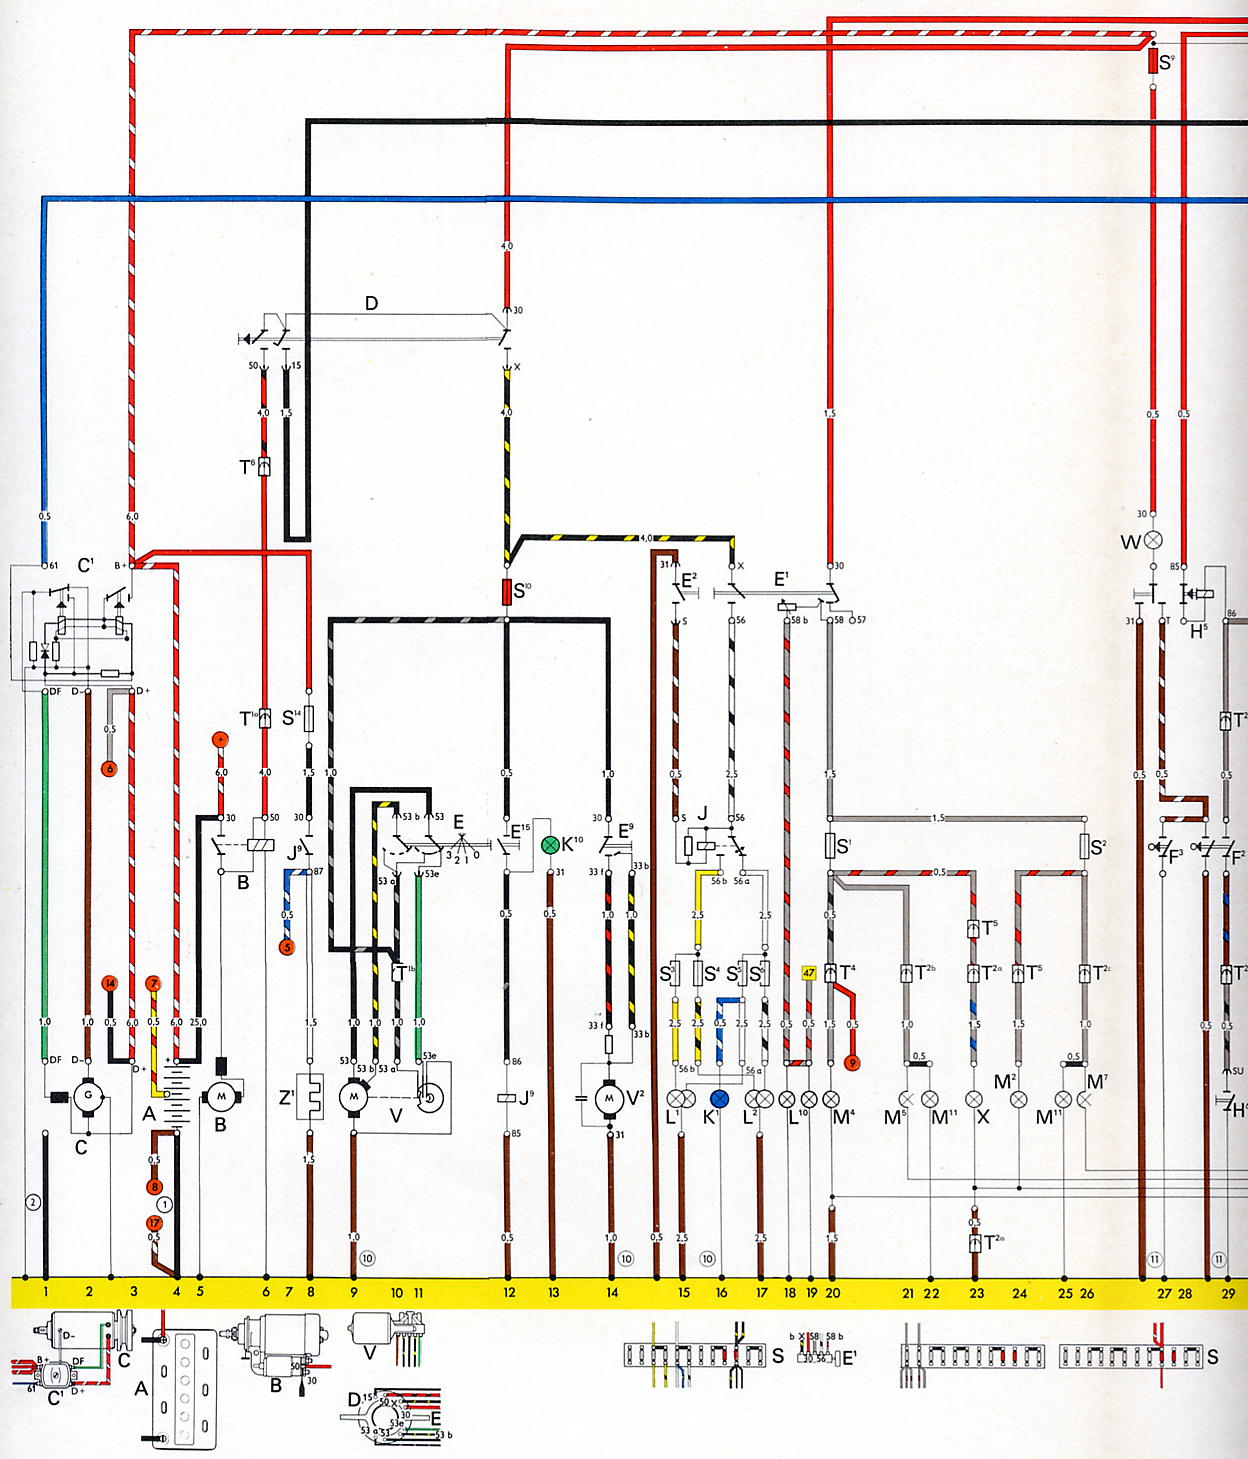 hight resolution of solid state voltage regulator wiring diagram wiring library kenwood car stereo wiring diagram kenwood car stereo